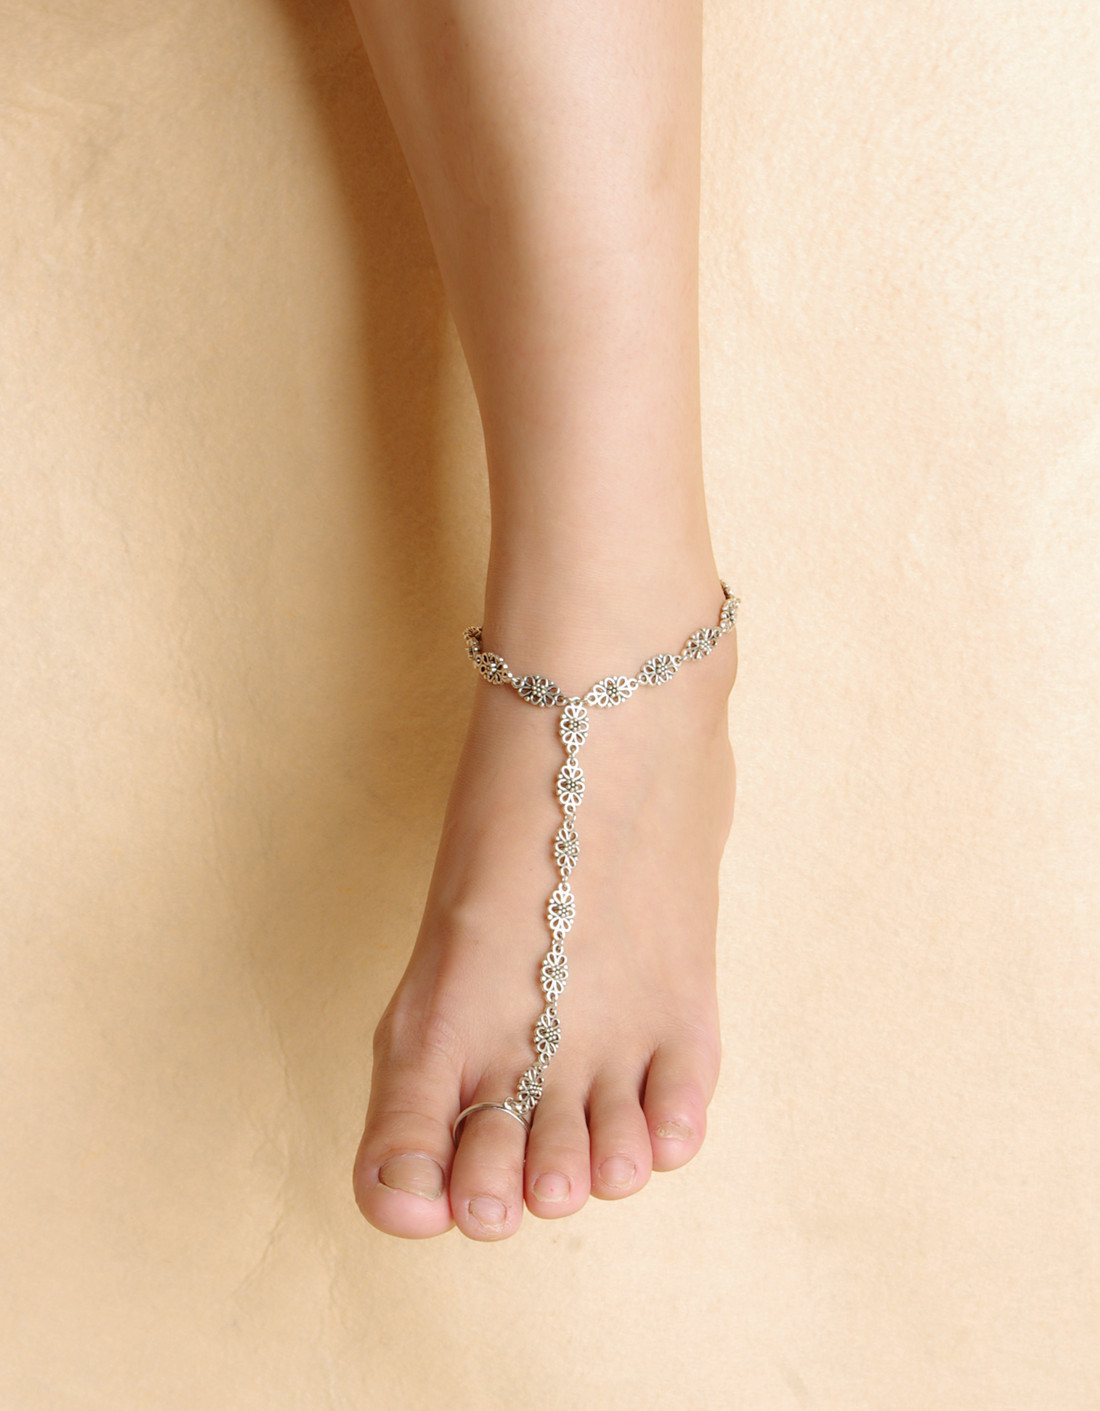 Exquisite Alloy Toe Ring Anklet for Beach Occasion